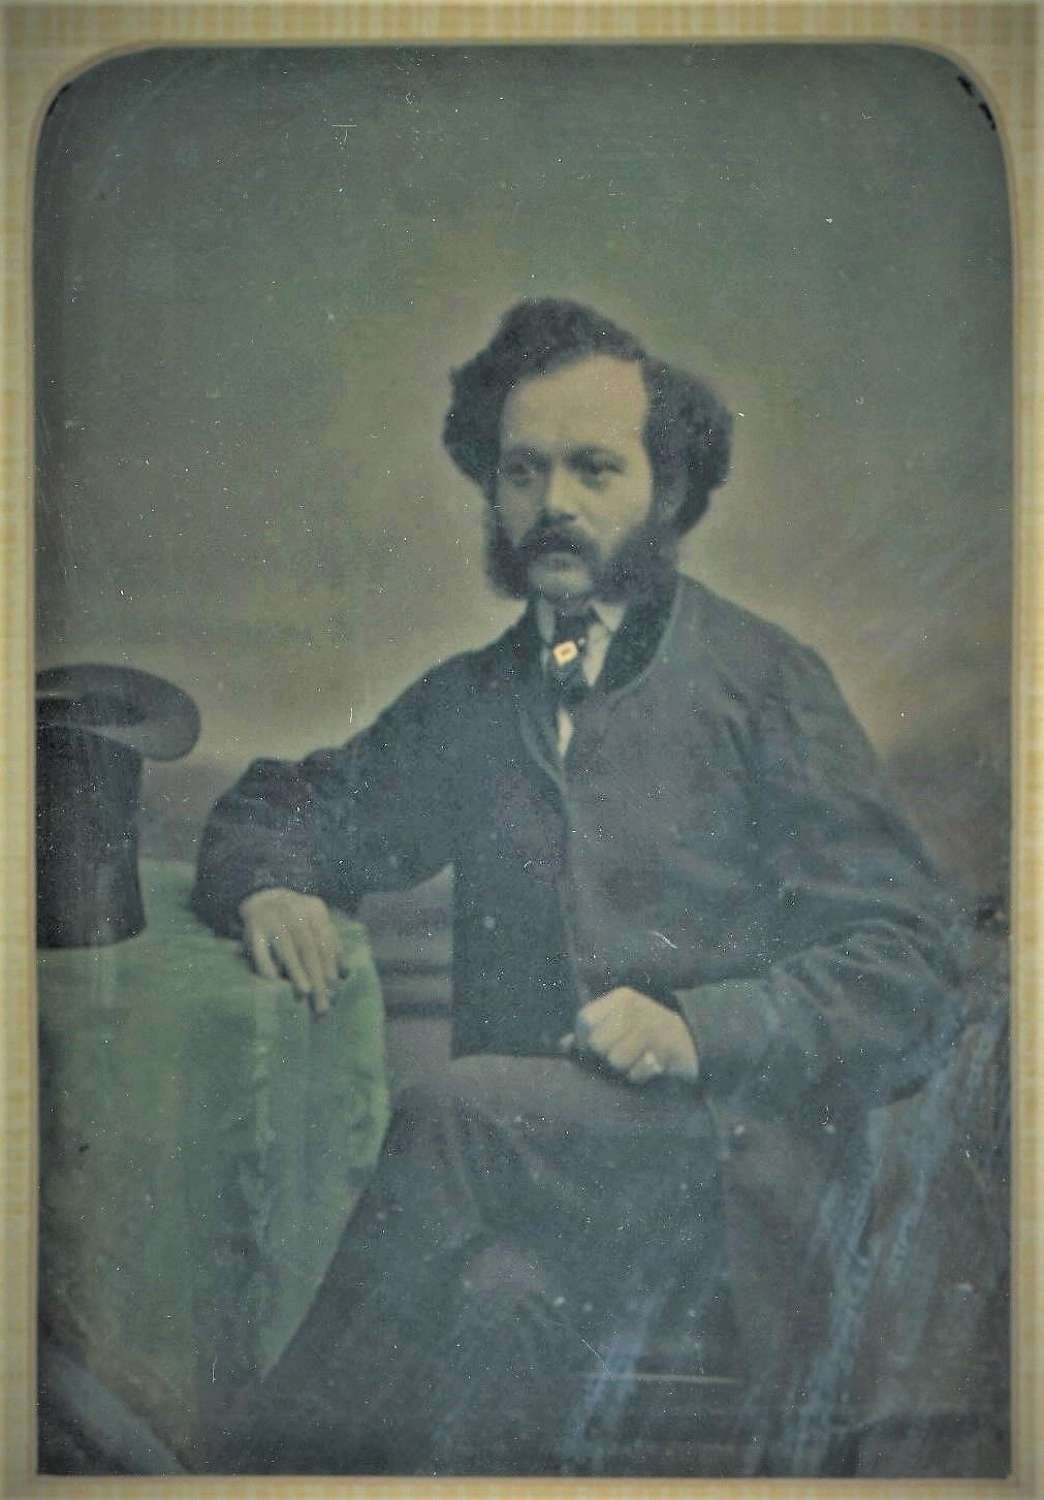 1/4 Plate Hand Tinted  Ambrotype of A  Gentleman  C1860